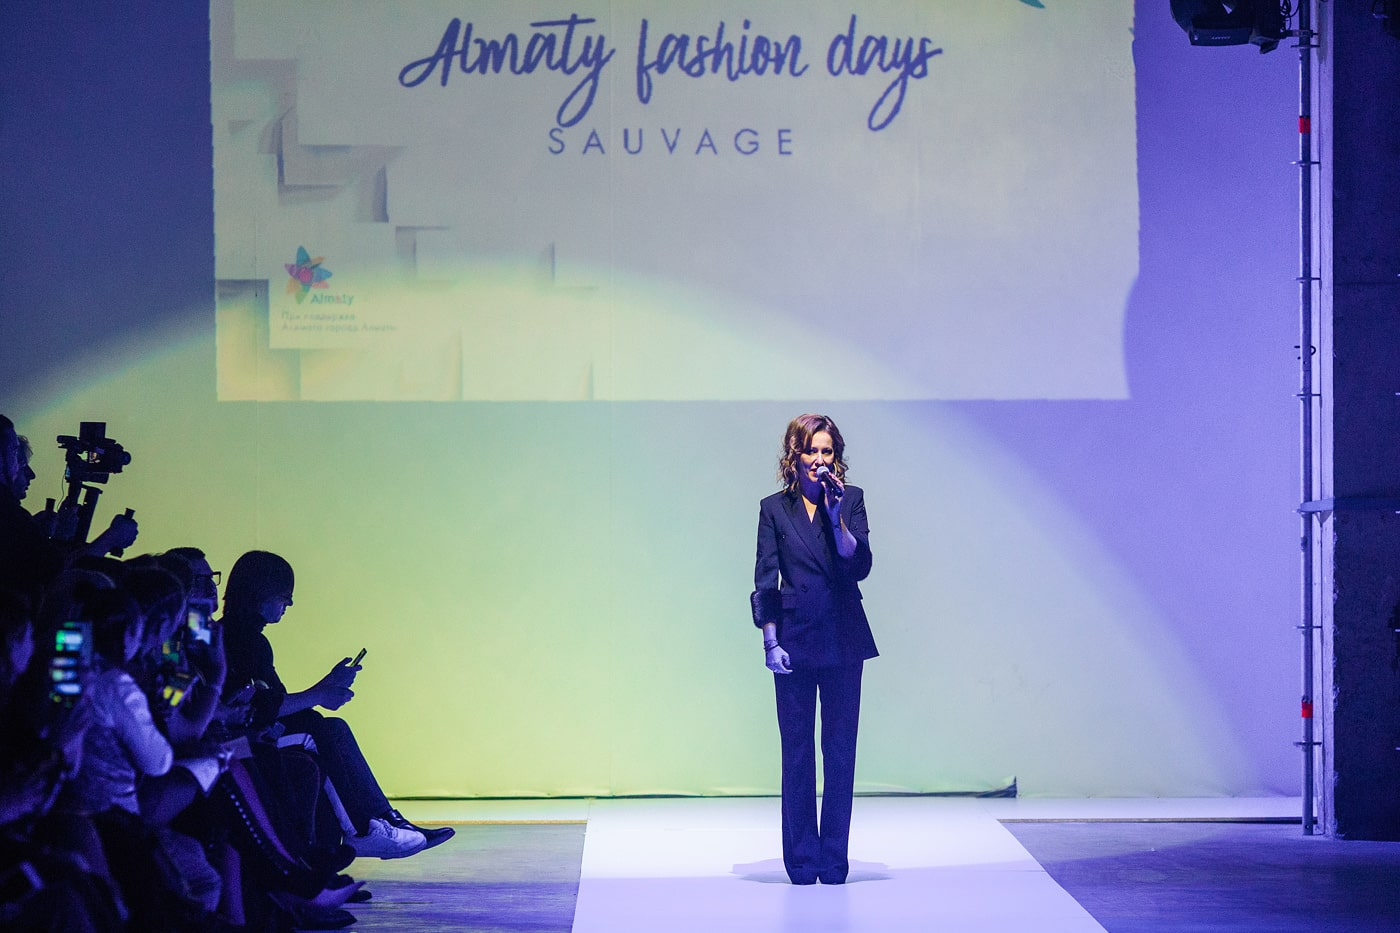 Almaty Fashion Days SAUVAGE